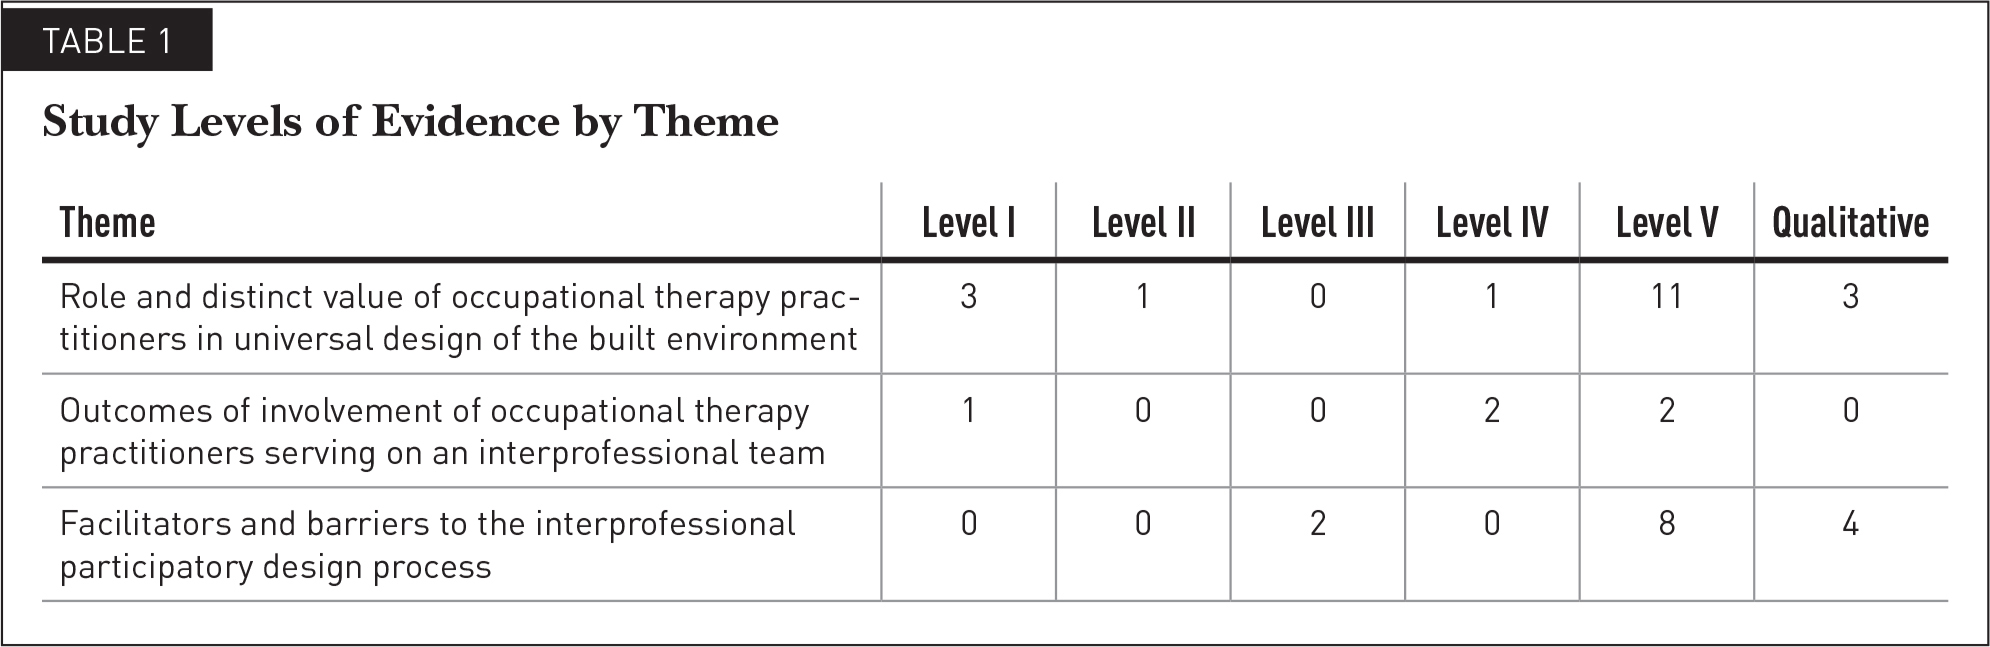 Study Levels of Evidence by Theme